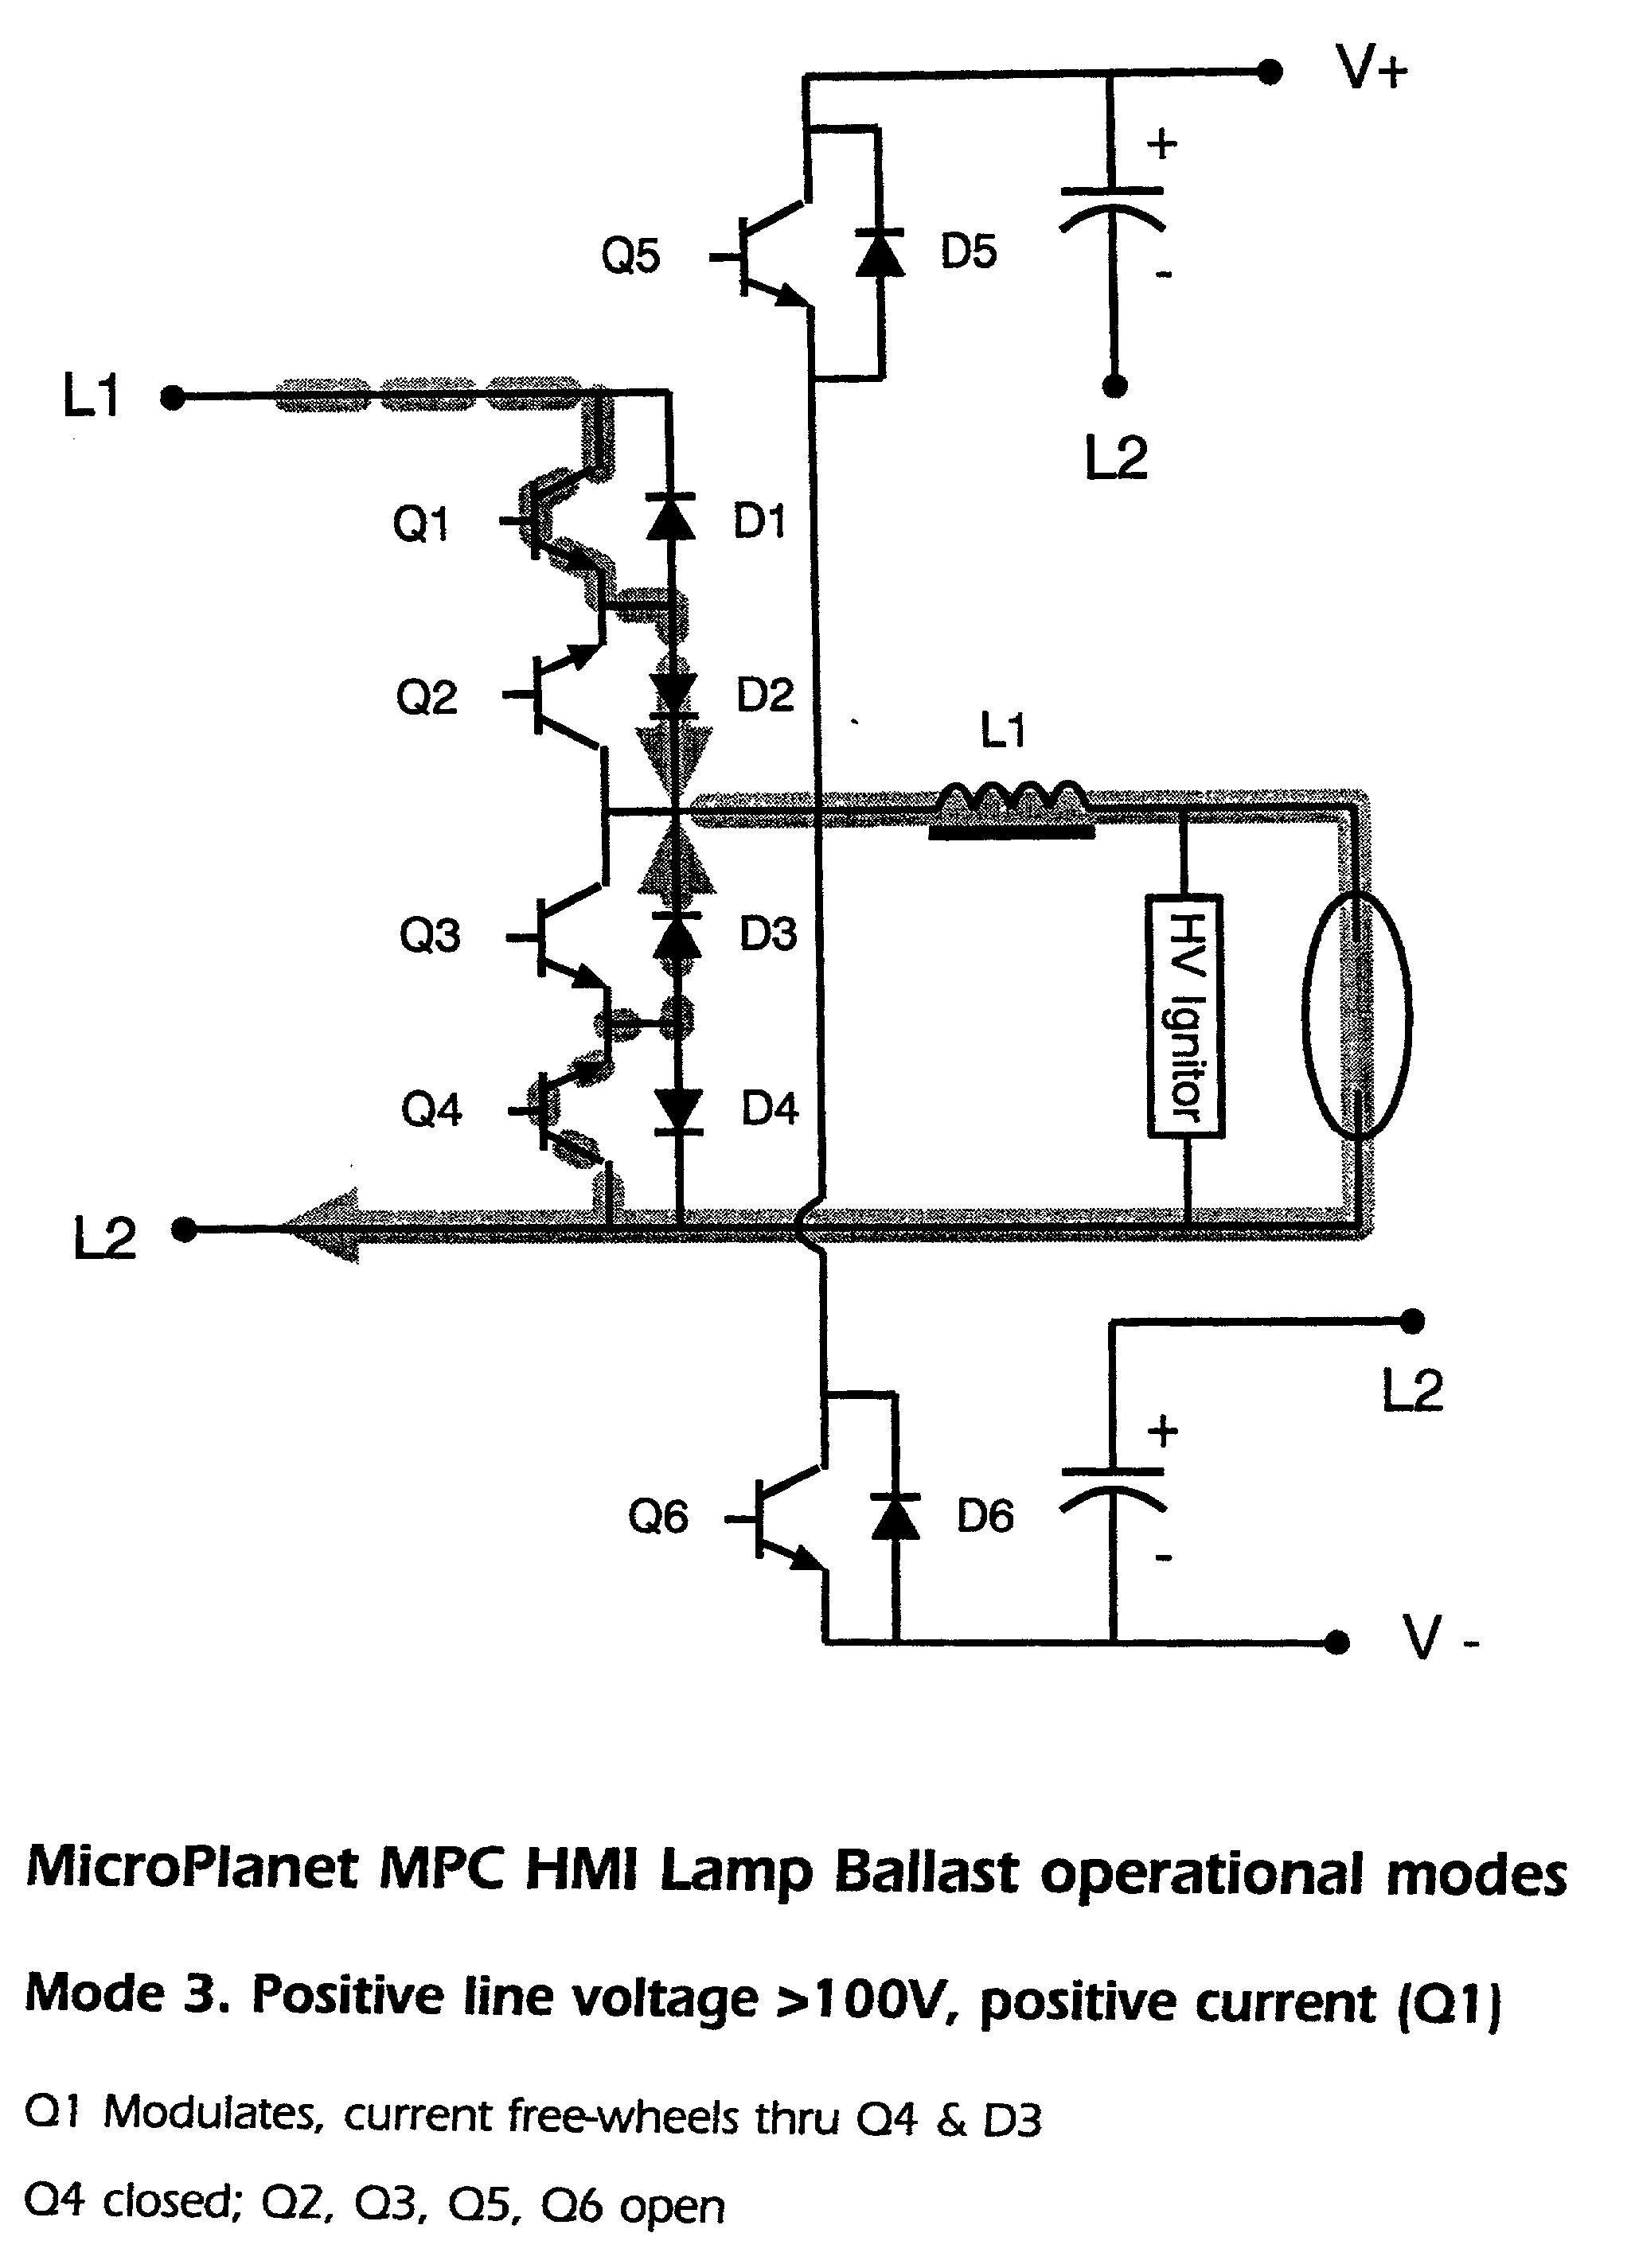 Us20030052658a1 Method And Apparatus For Electronic Power Control Fig 3 The New Acled Circuit Combines Displacement Galvanic Figure 20030320 P00004